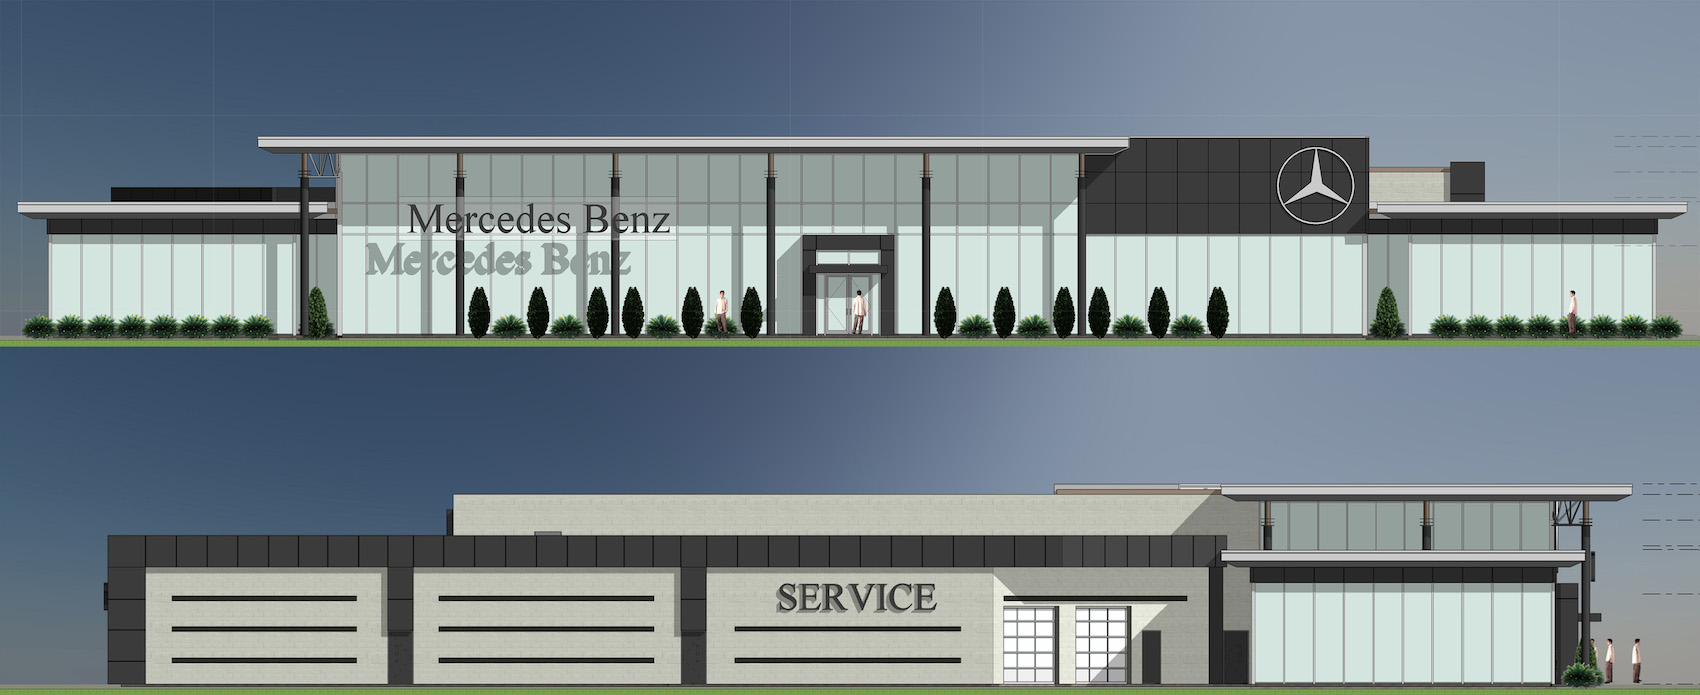 Mercedes benz barrie car dealership renovation s r for Mercedes benz dealers in michigan